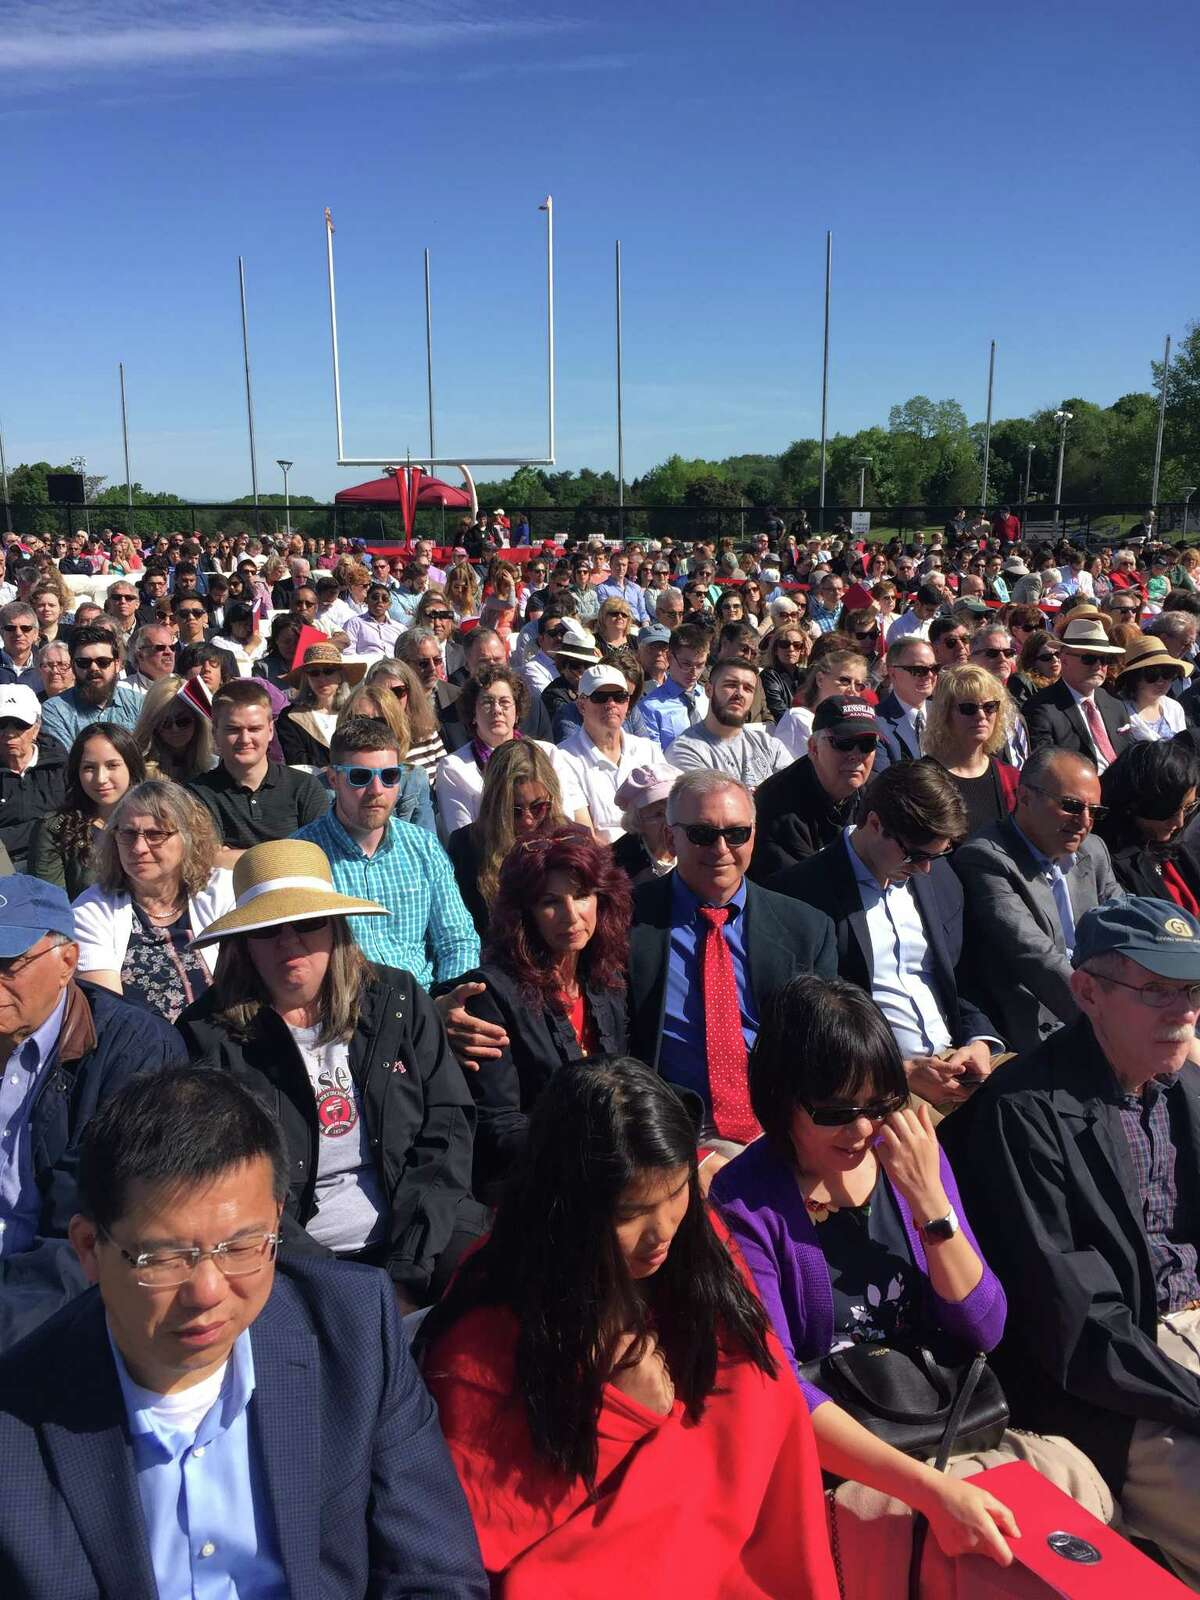 A scene from Saturday's commencement ceremony at Rensselaer Polytechnic Institute (Courtesy RPI)